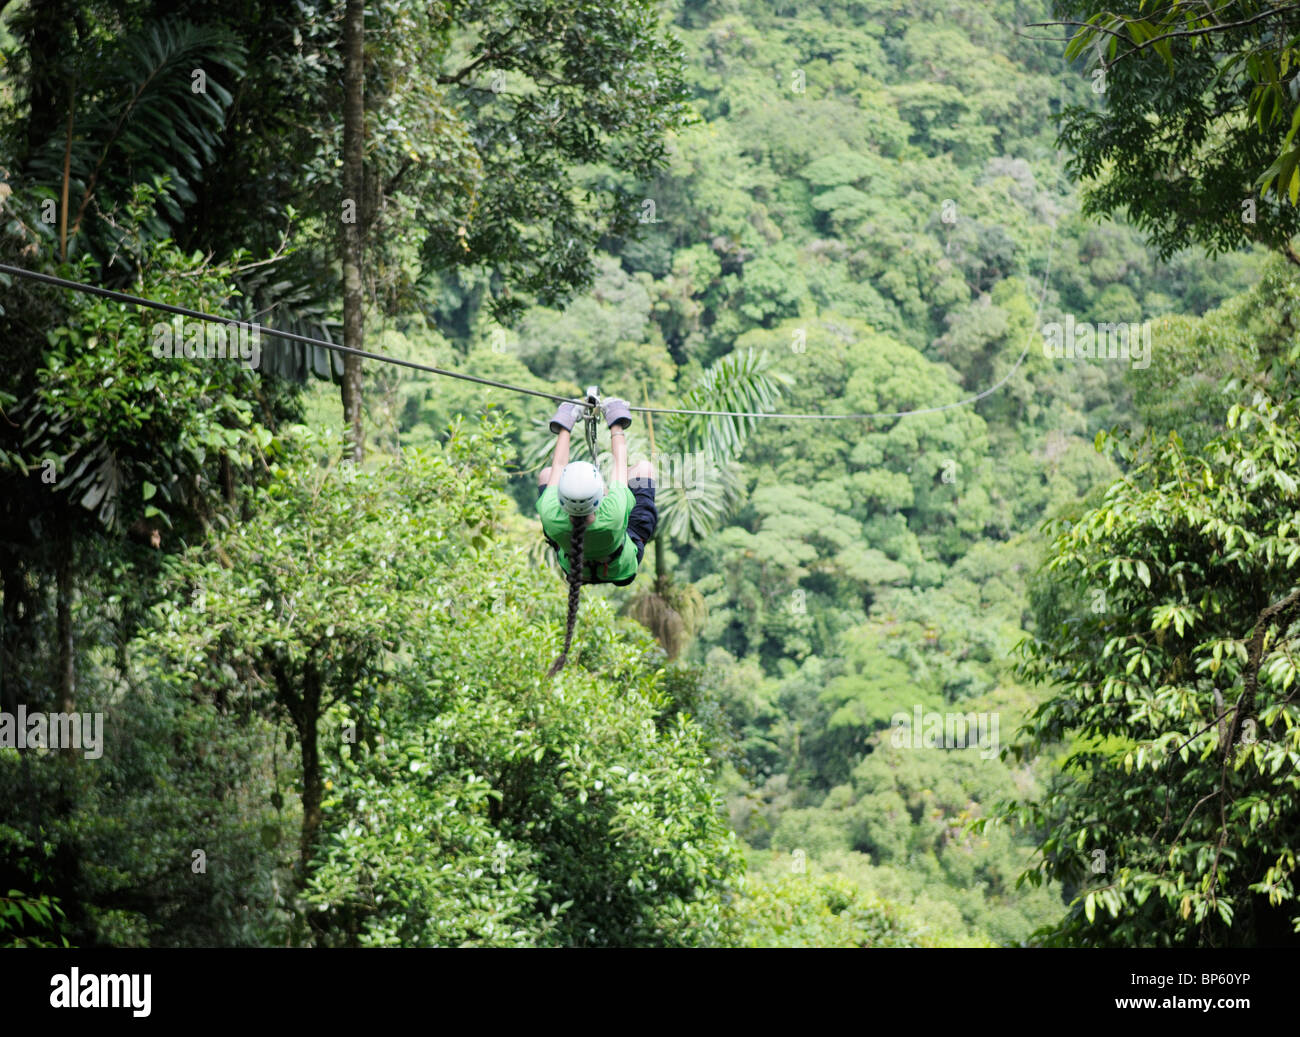 Girl riding a zipline above the rainforest canopy, La Fortuna, Costa Rica - Stock Image